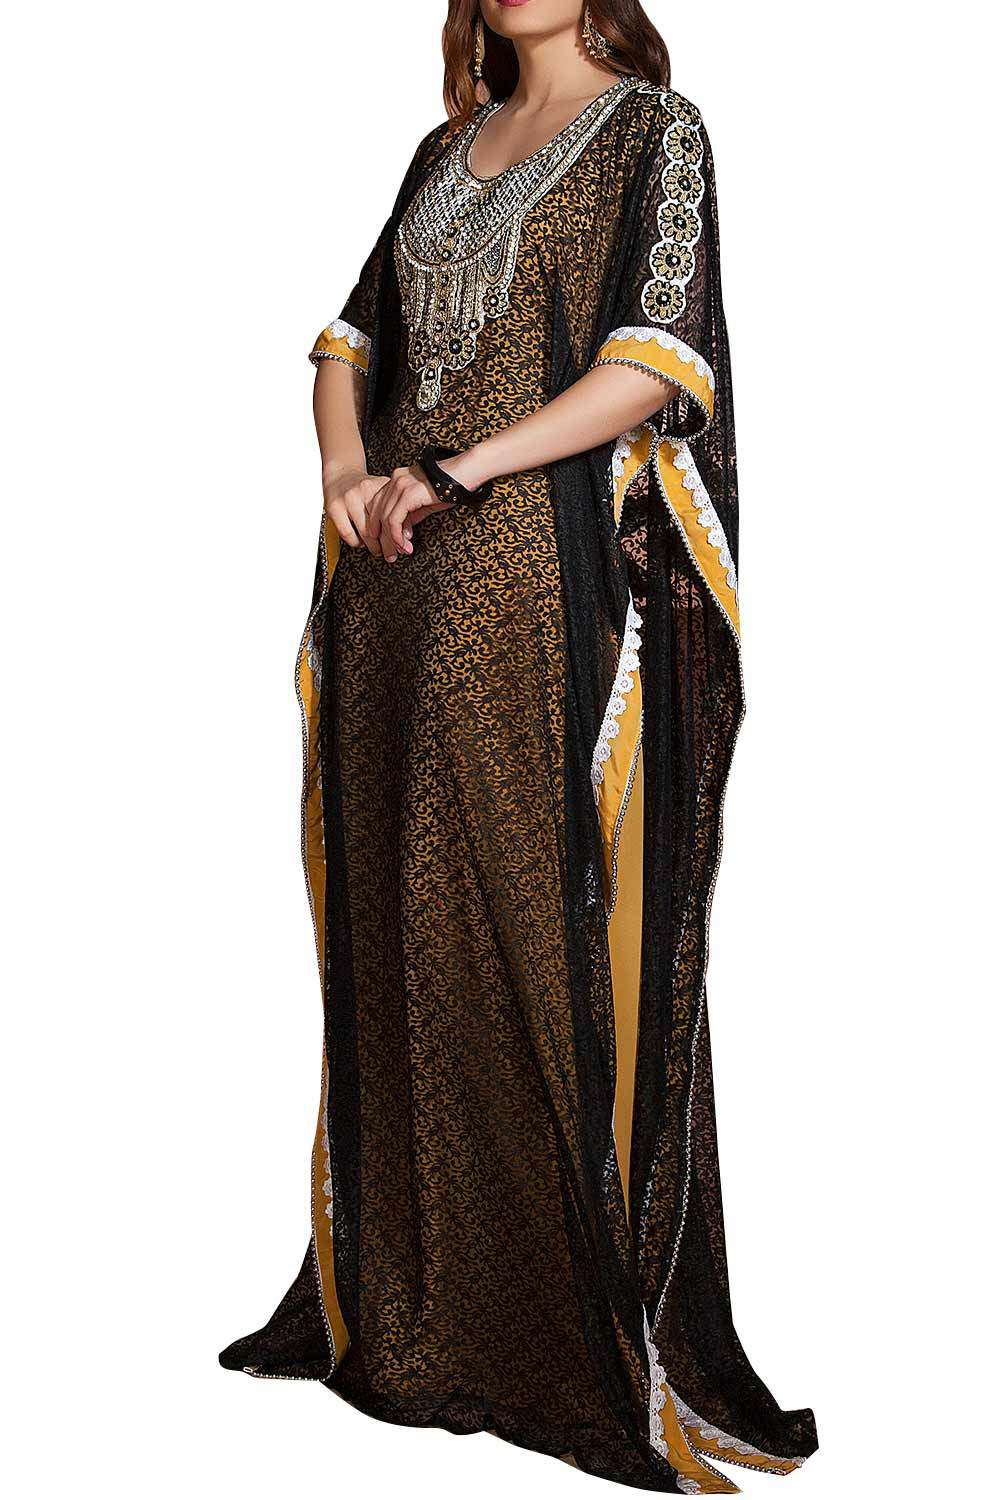 Yellow and Black Net Brasso Handmade Design Farasha Evening & Party Wear Kaftan